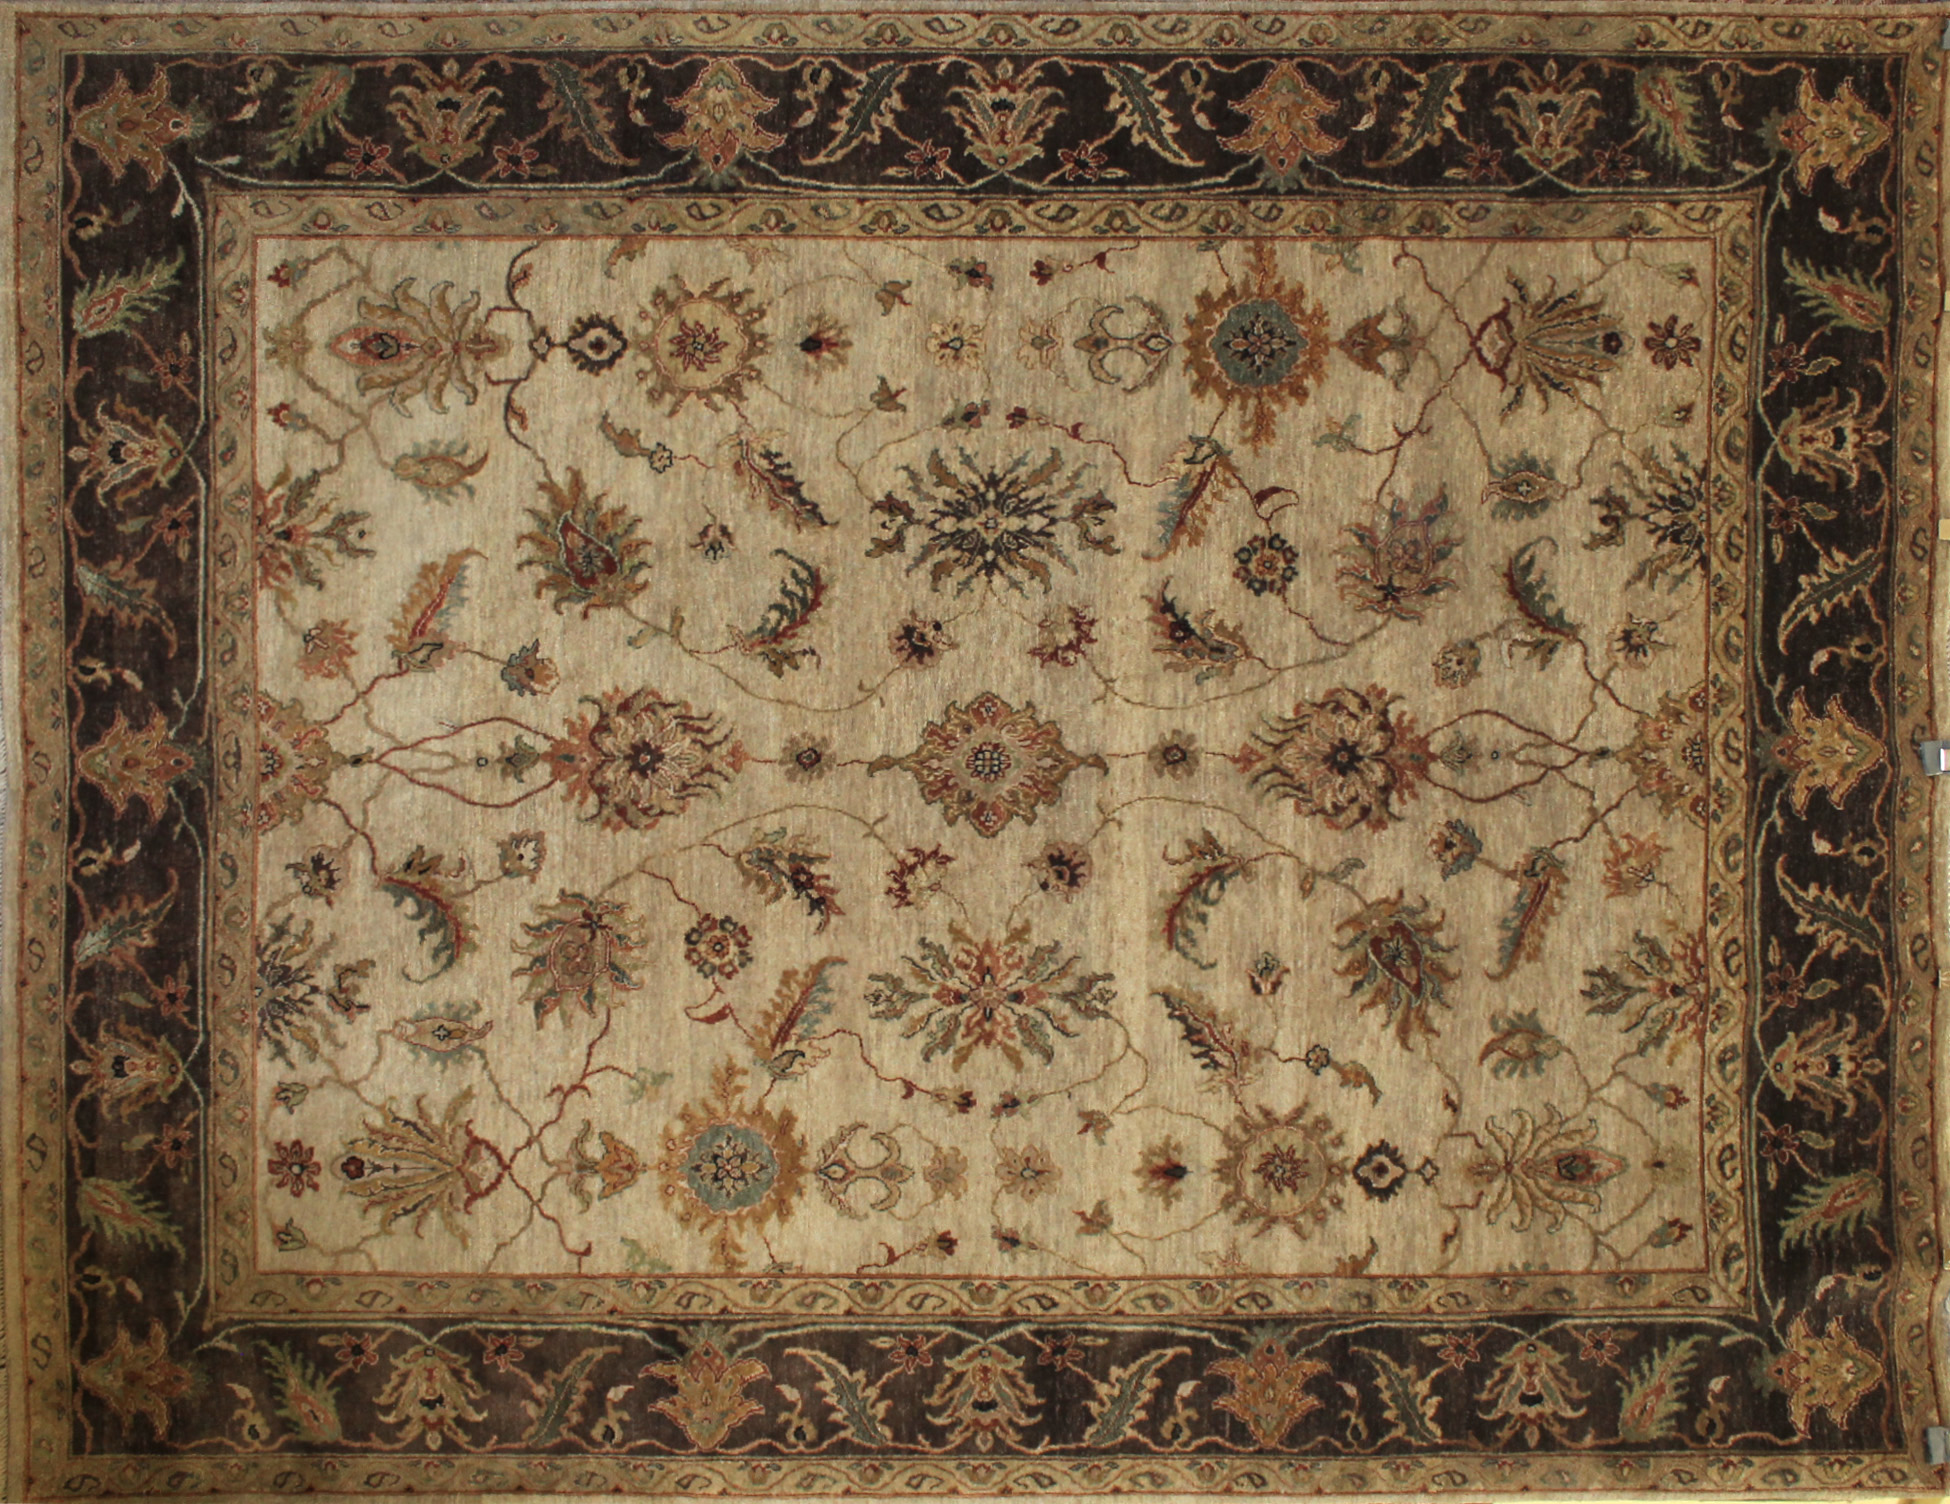 8x10 Traditional Hand Knotted Wool Area Rug - MR7722